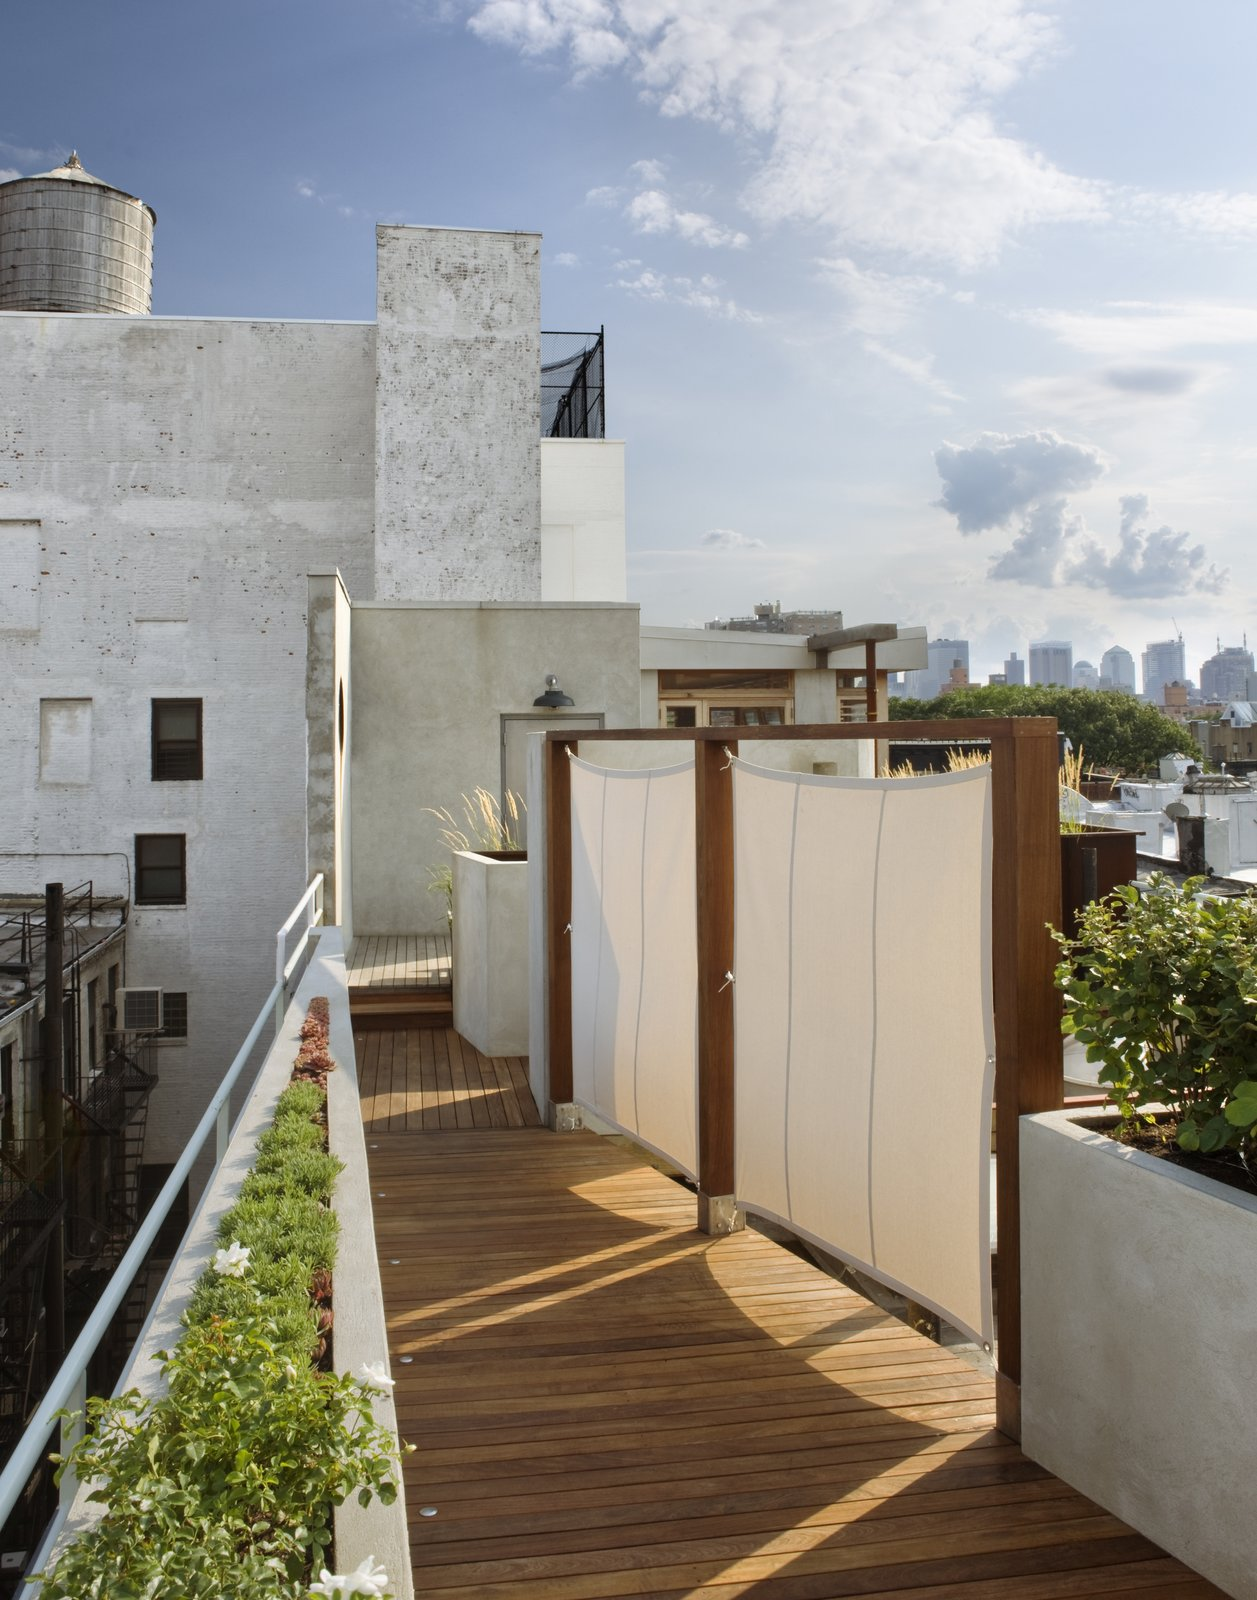 Walking back down the ramp toward the penthouse in the late afternoon sun.  East Village Roof Garden